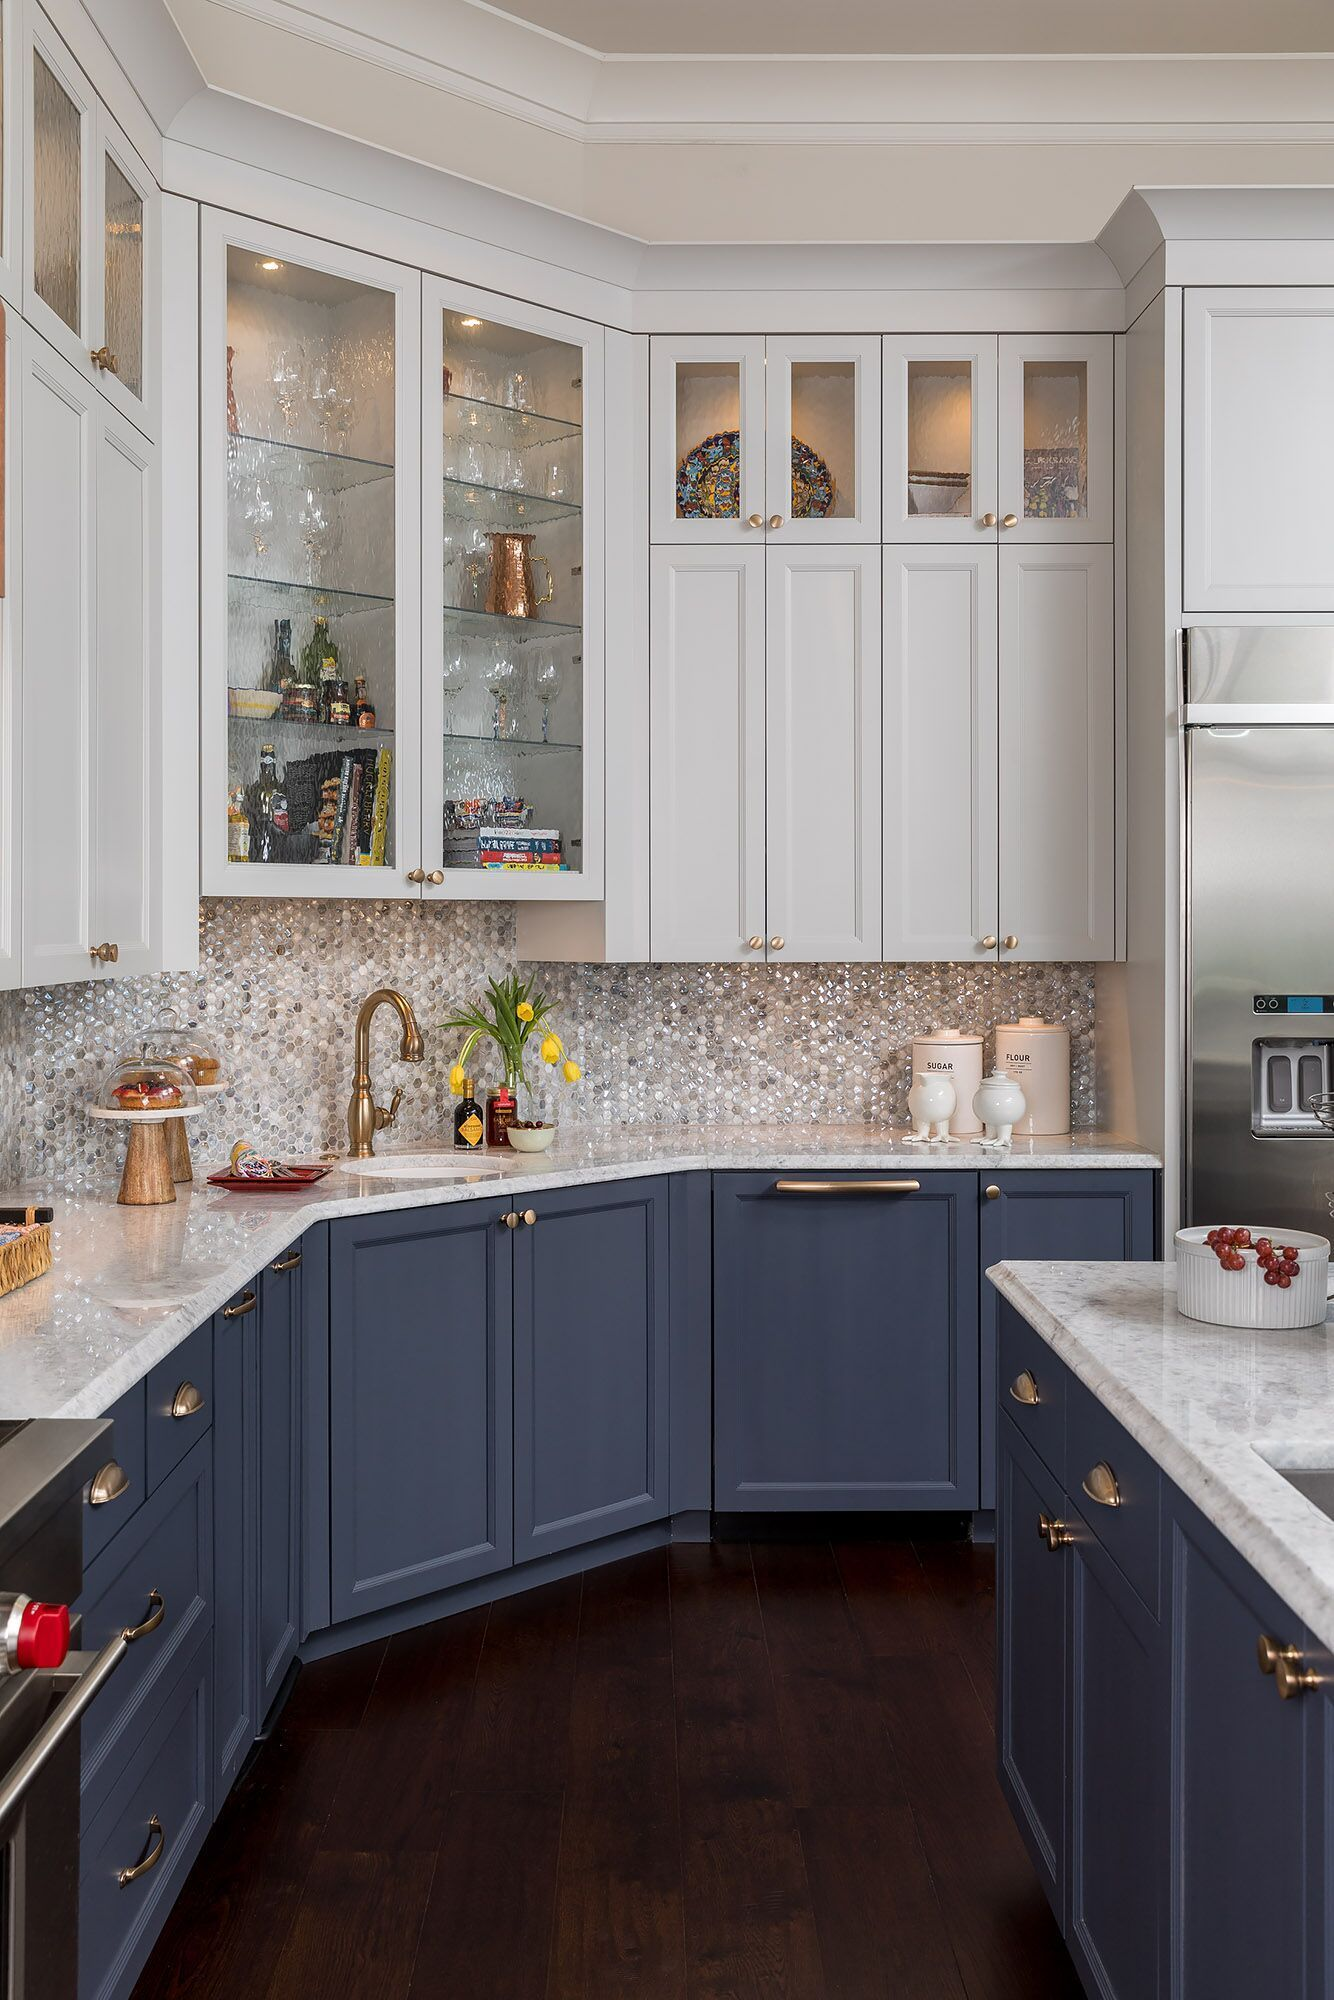 Two Tone Kitchen Design With White Uppers And Blue Lower Cabinets White Cou Kitchen Cabinet Design Kitchen Cabinets Color Combination Kitchen Design